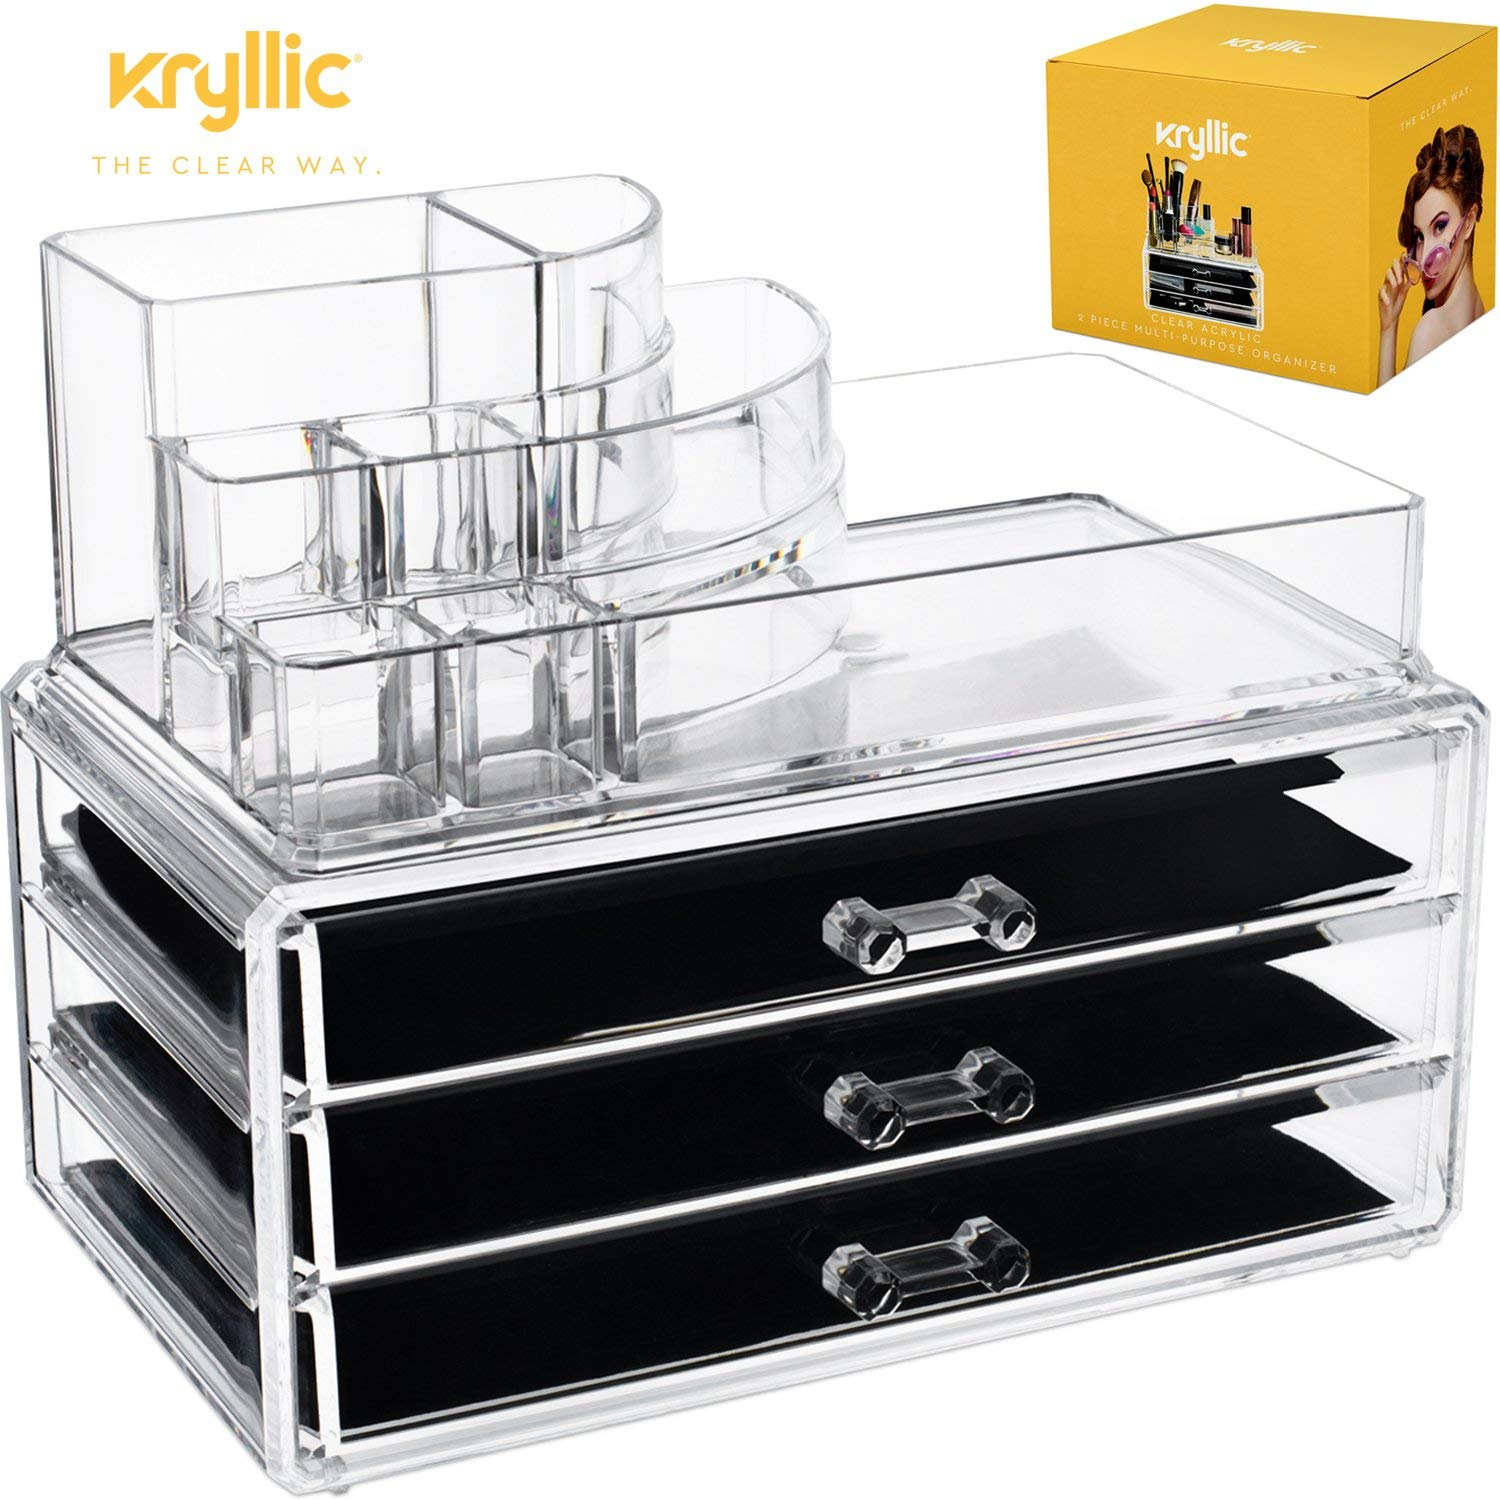 Acrylic Makeup jewelry cosmetic organizer - Set of 3 Extra Deep Drawers That Maneuver Smoothly With Separate Stackable lipstick & Nailpolish Holder Made With the Highest quality Strong Thick Acrylic